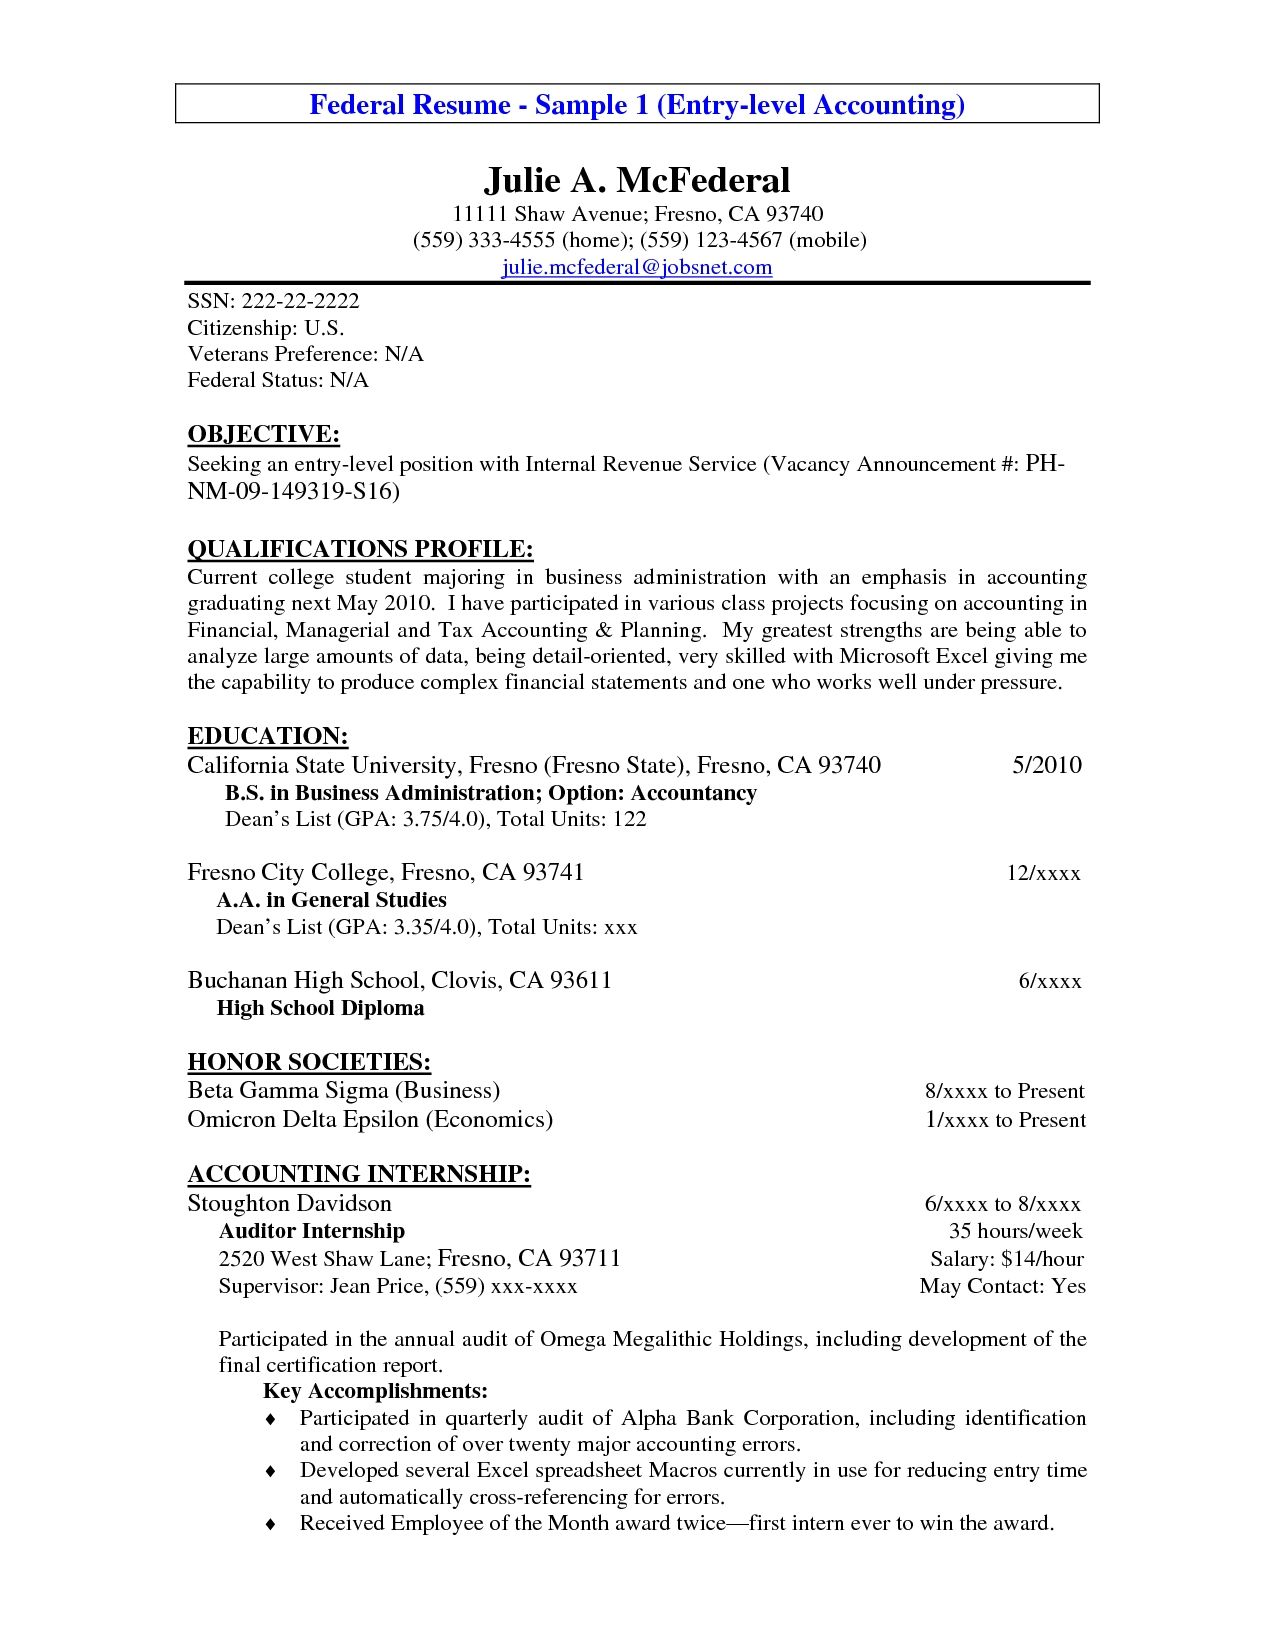 Accountant Resume Sample Entry Level Resume Example Entry Level Accounting Resume Sample